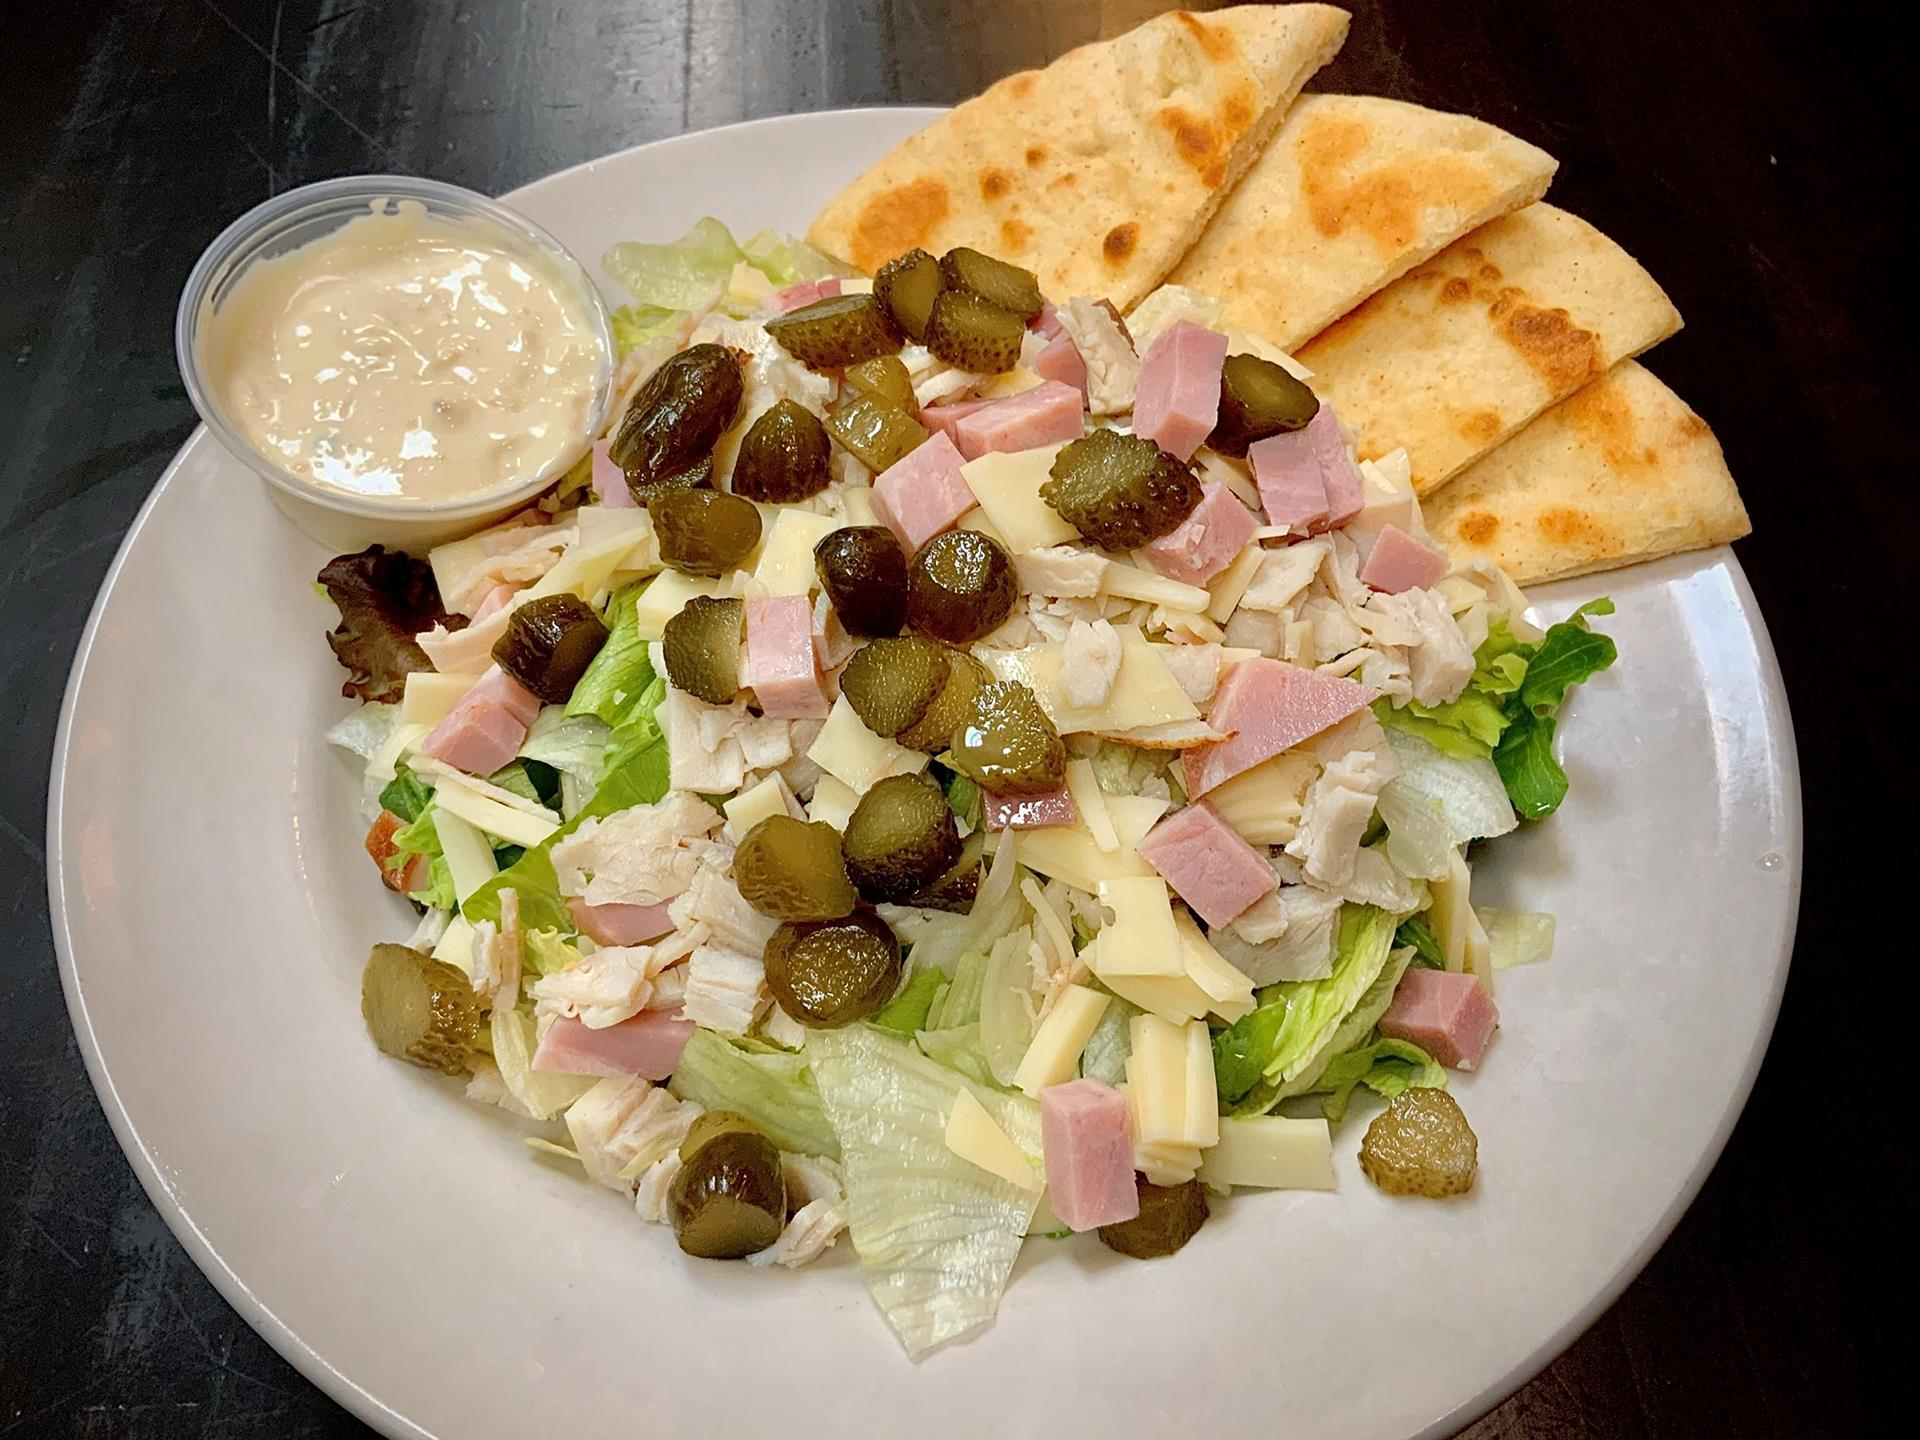 Hudson Salad: Chopped Iceberg, Chopped Ham, Turkey, And Natural Swiss Cheese, Gherkin Pickles And Served With Our Homemade Maurice Dressing On The Side